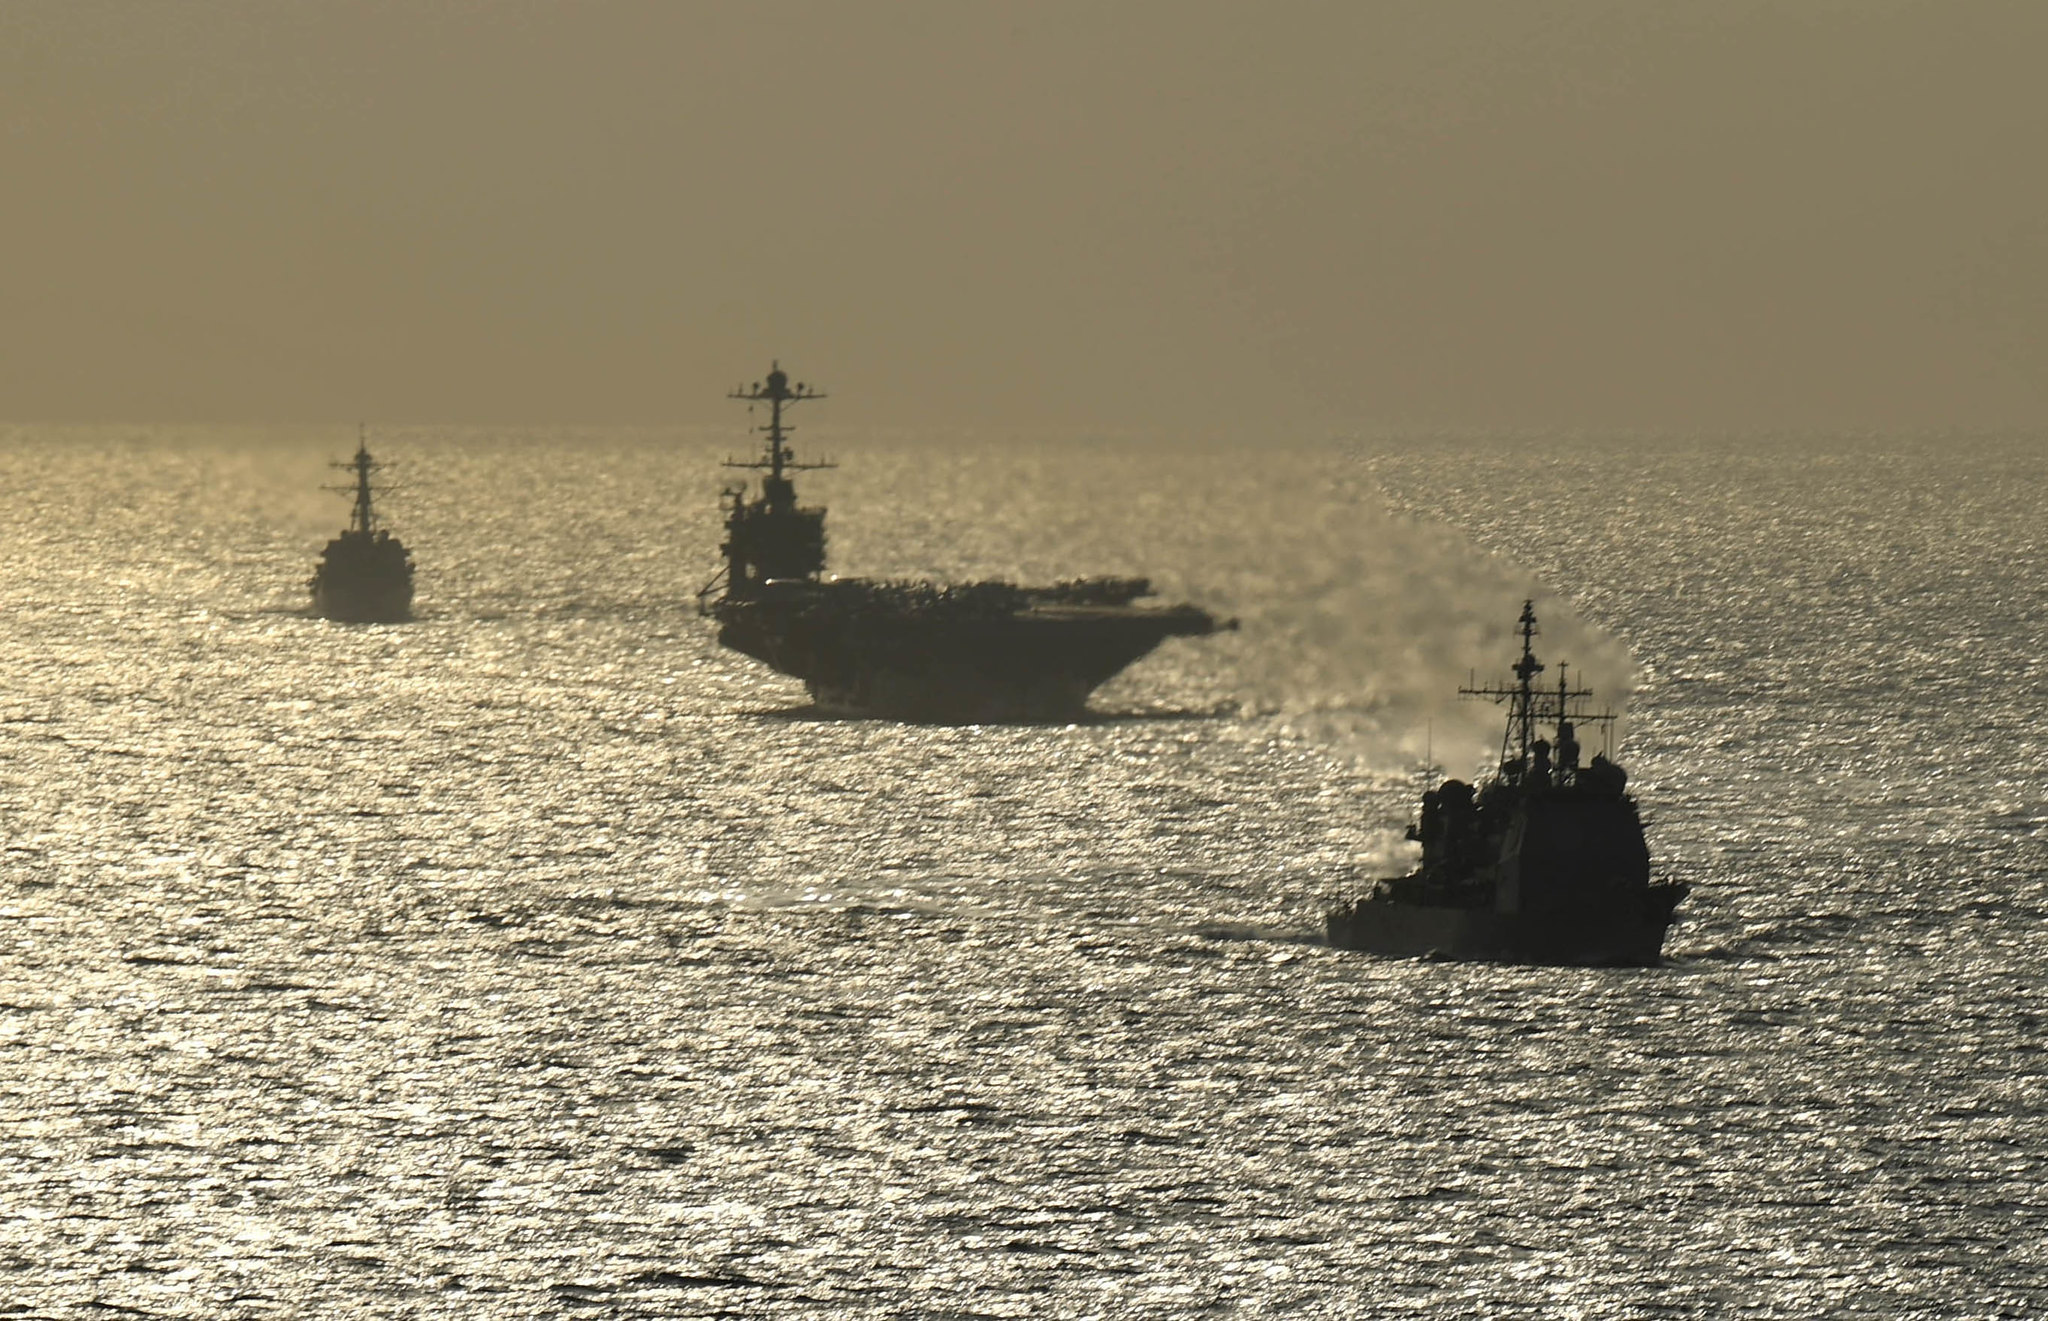 The Ticonderoga-class guided-missile cruiser USS Normandy (CG 60), front, the Nimitz-class aircraft carrier USS Harry S. Truman (CVN 75) and the Arleigh Burke-class guided-missile destroyer USS Lassen (DDG 82) transit the Atlantic Ocean on July 18, 2019. (Mass Communication Specialist 3rd Class Maxwell G. Higgins/Navy)